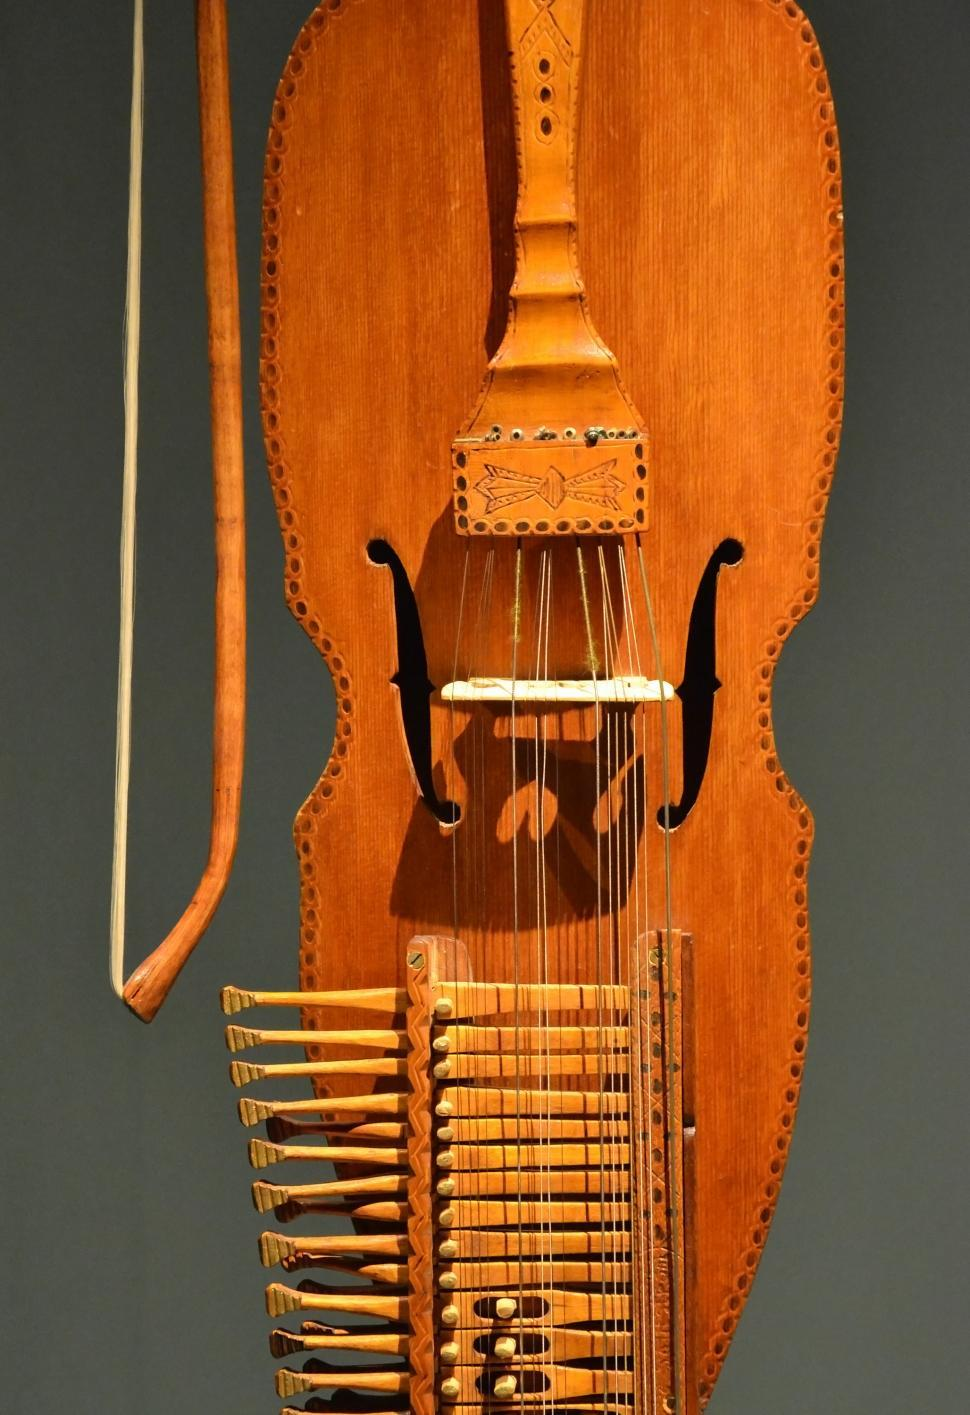 Download Free Stock HD Photo of Nyckelharpa detail Online